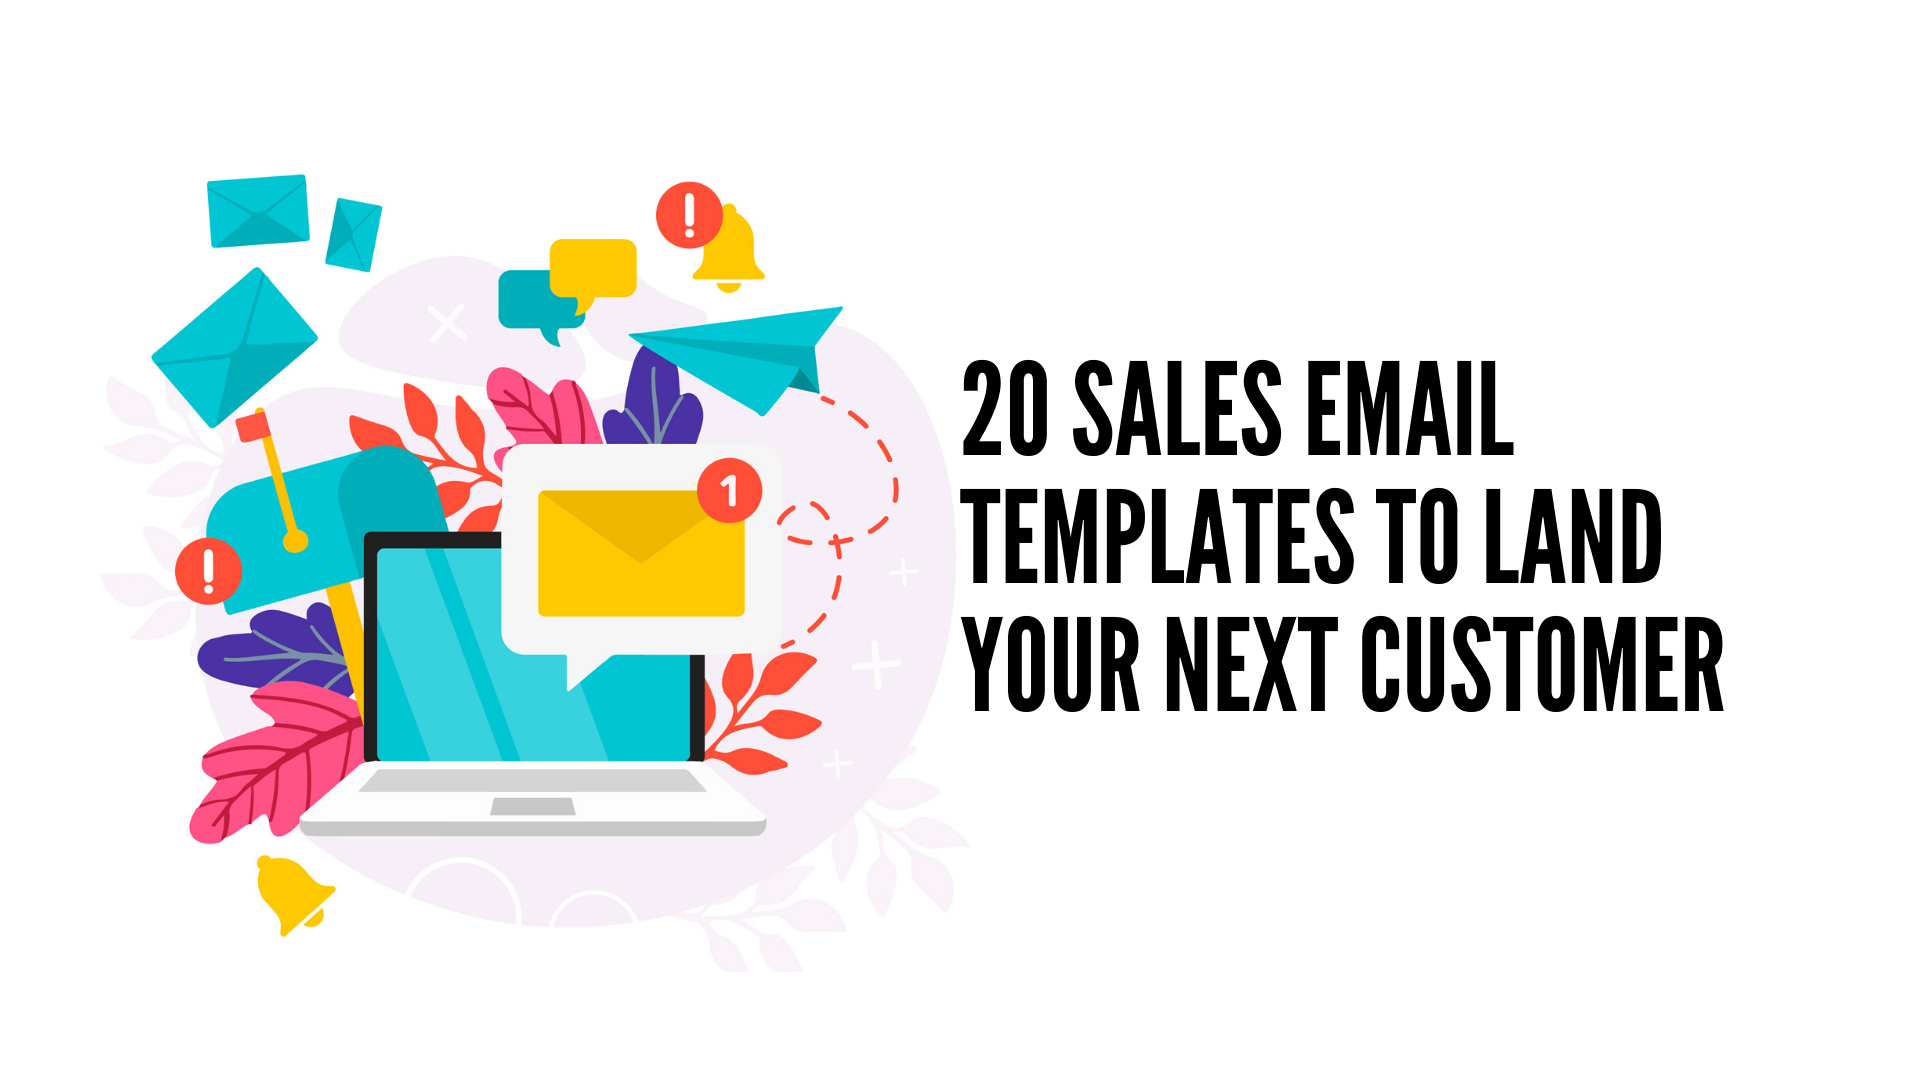 20 Sales Email Templates to Land Your Next Customer